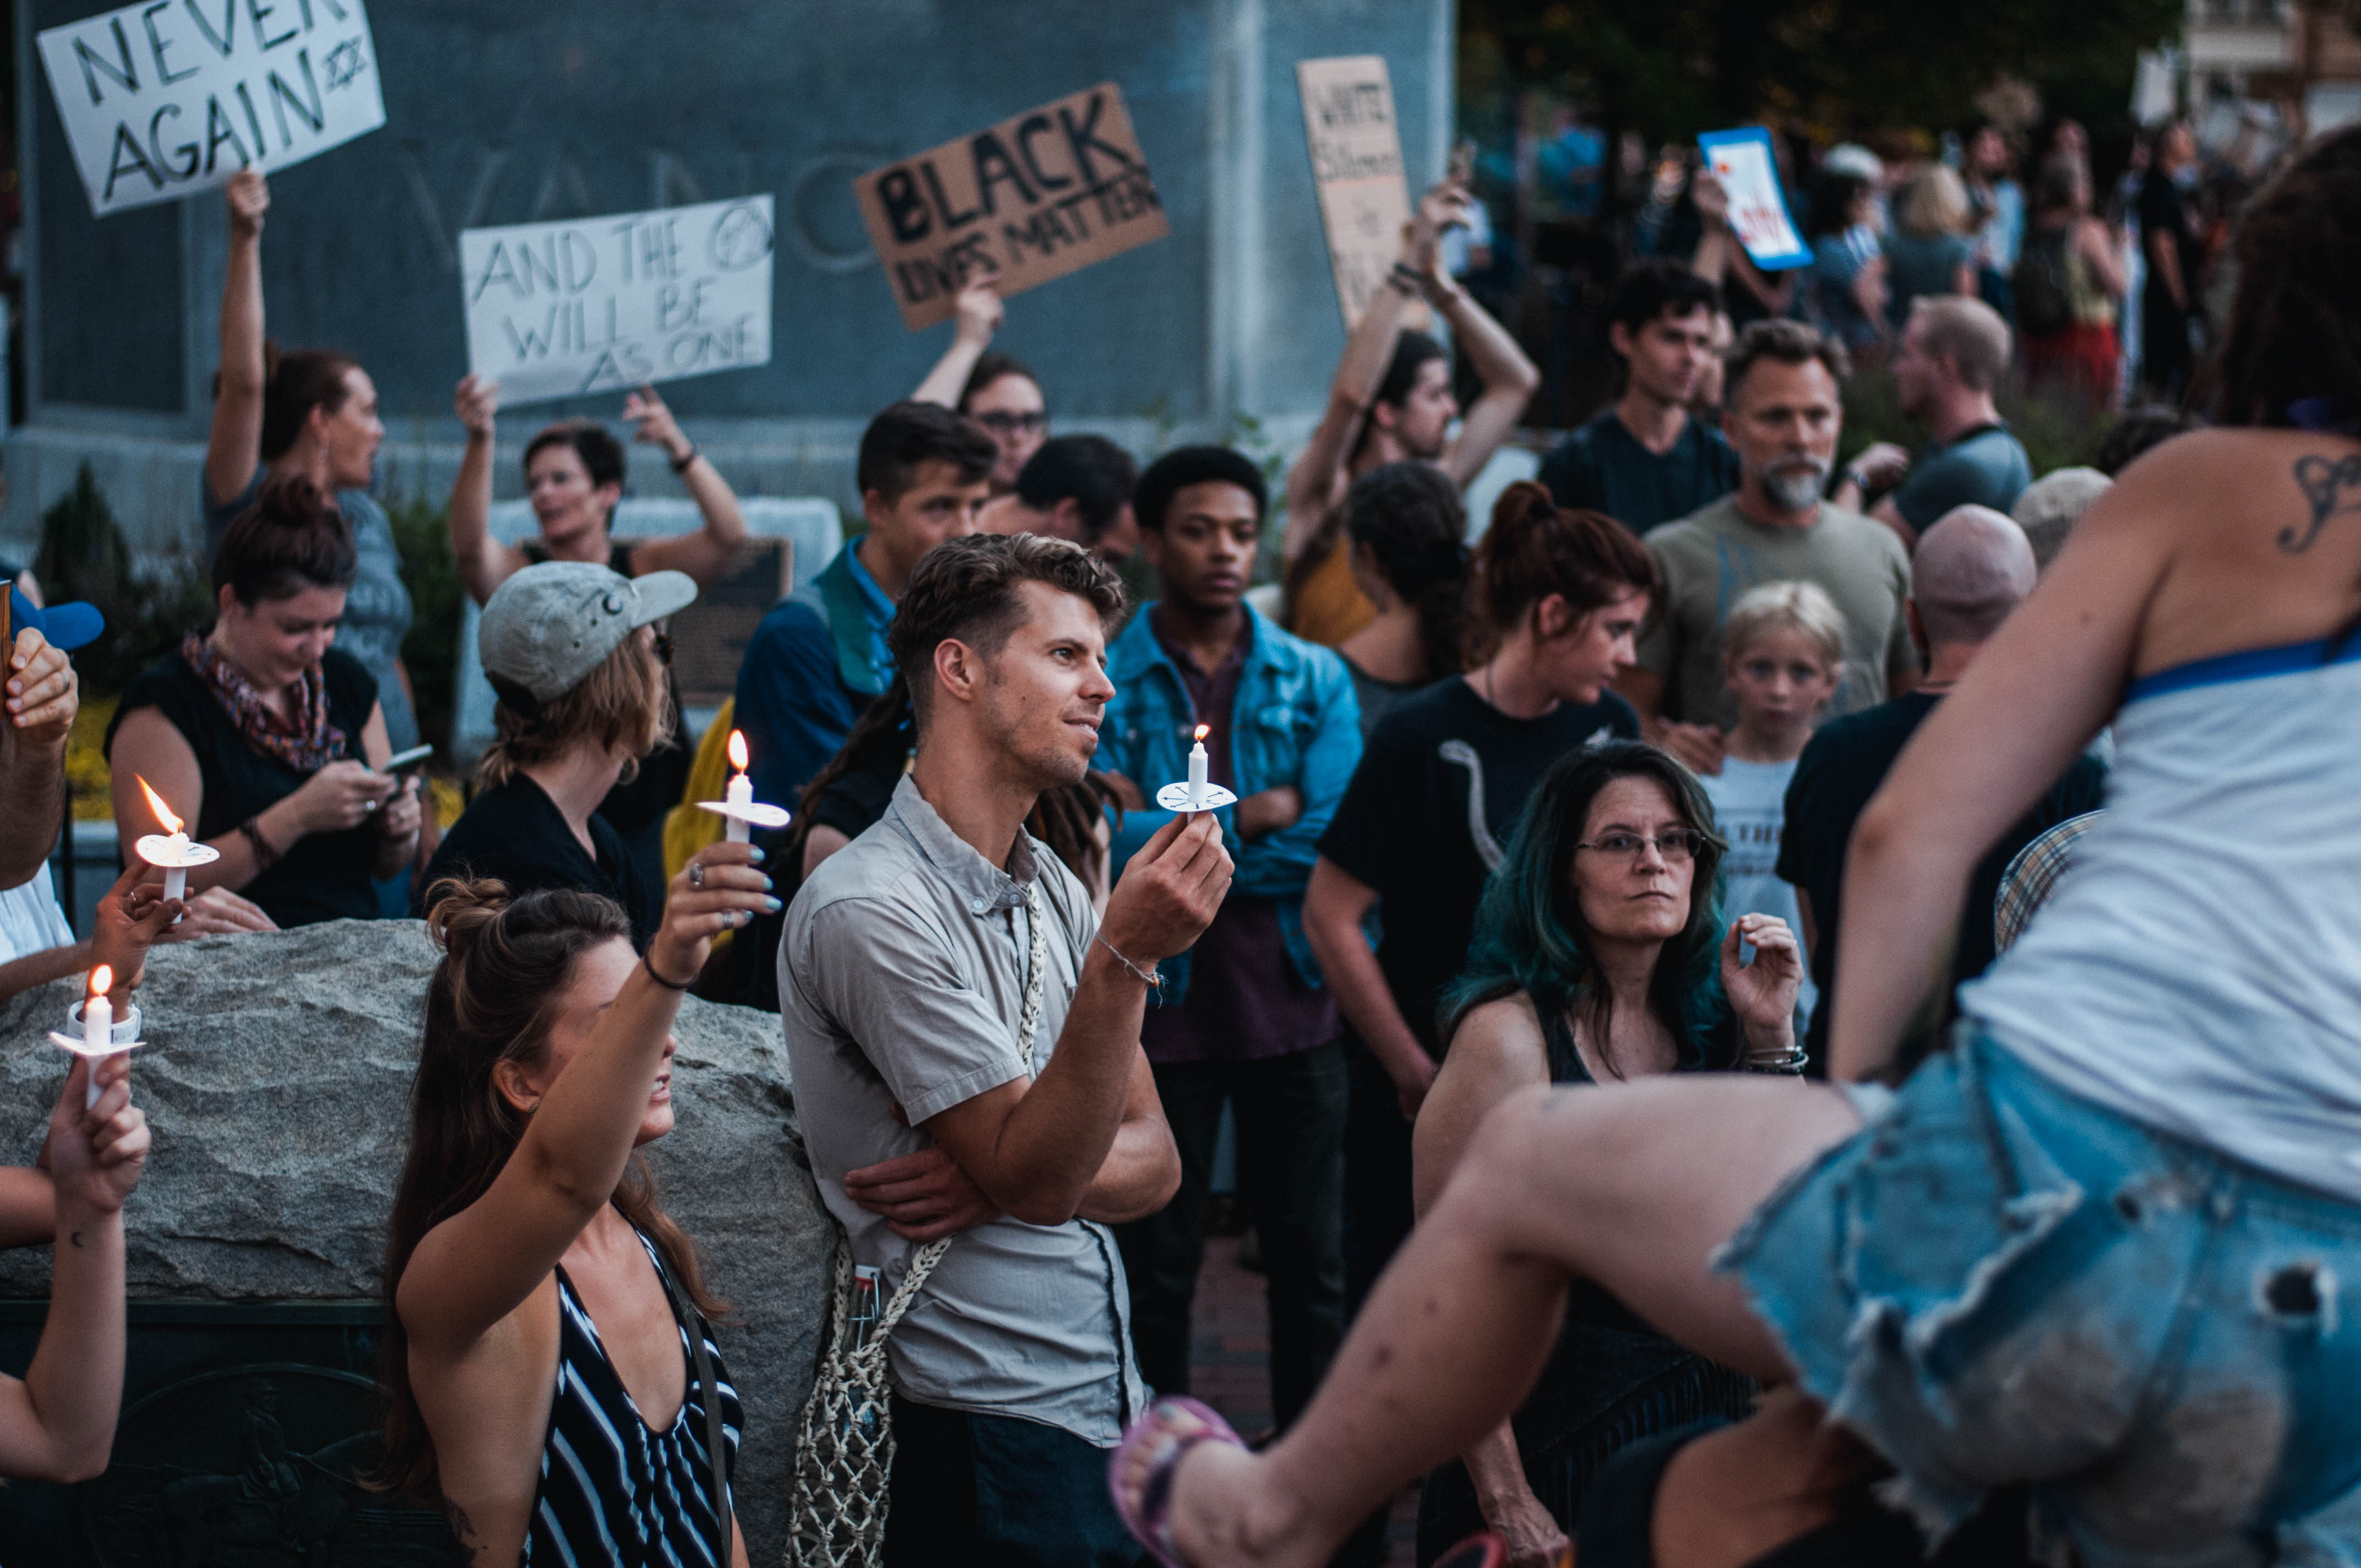 On August 13, 2017, in downtown Asheville at the Vance Monument, a unity rally was held against white supremacy and as a show of solidarity with those in Charlottesville.Photo credit photographer Connor BurchettFollow Connor on Instagram @connorburchett